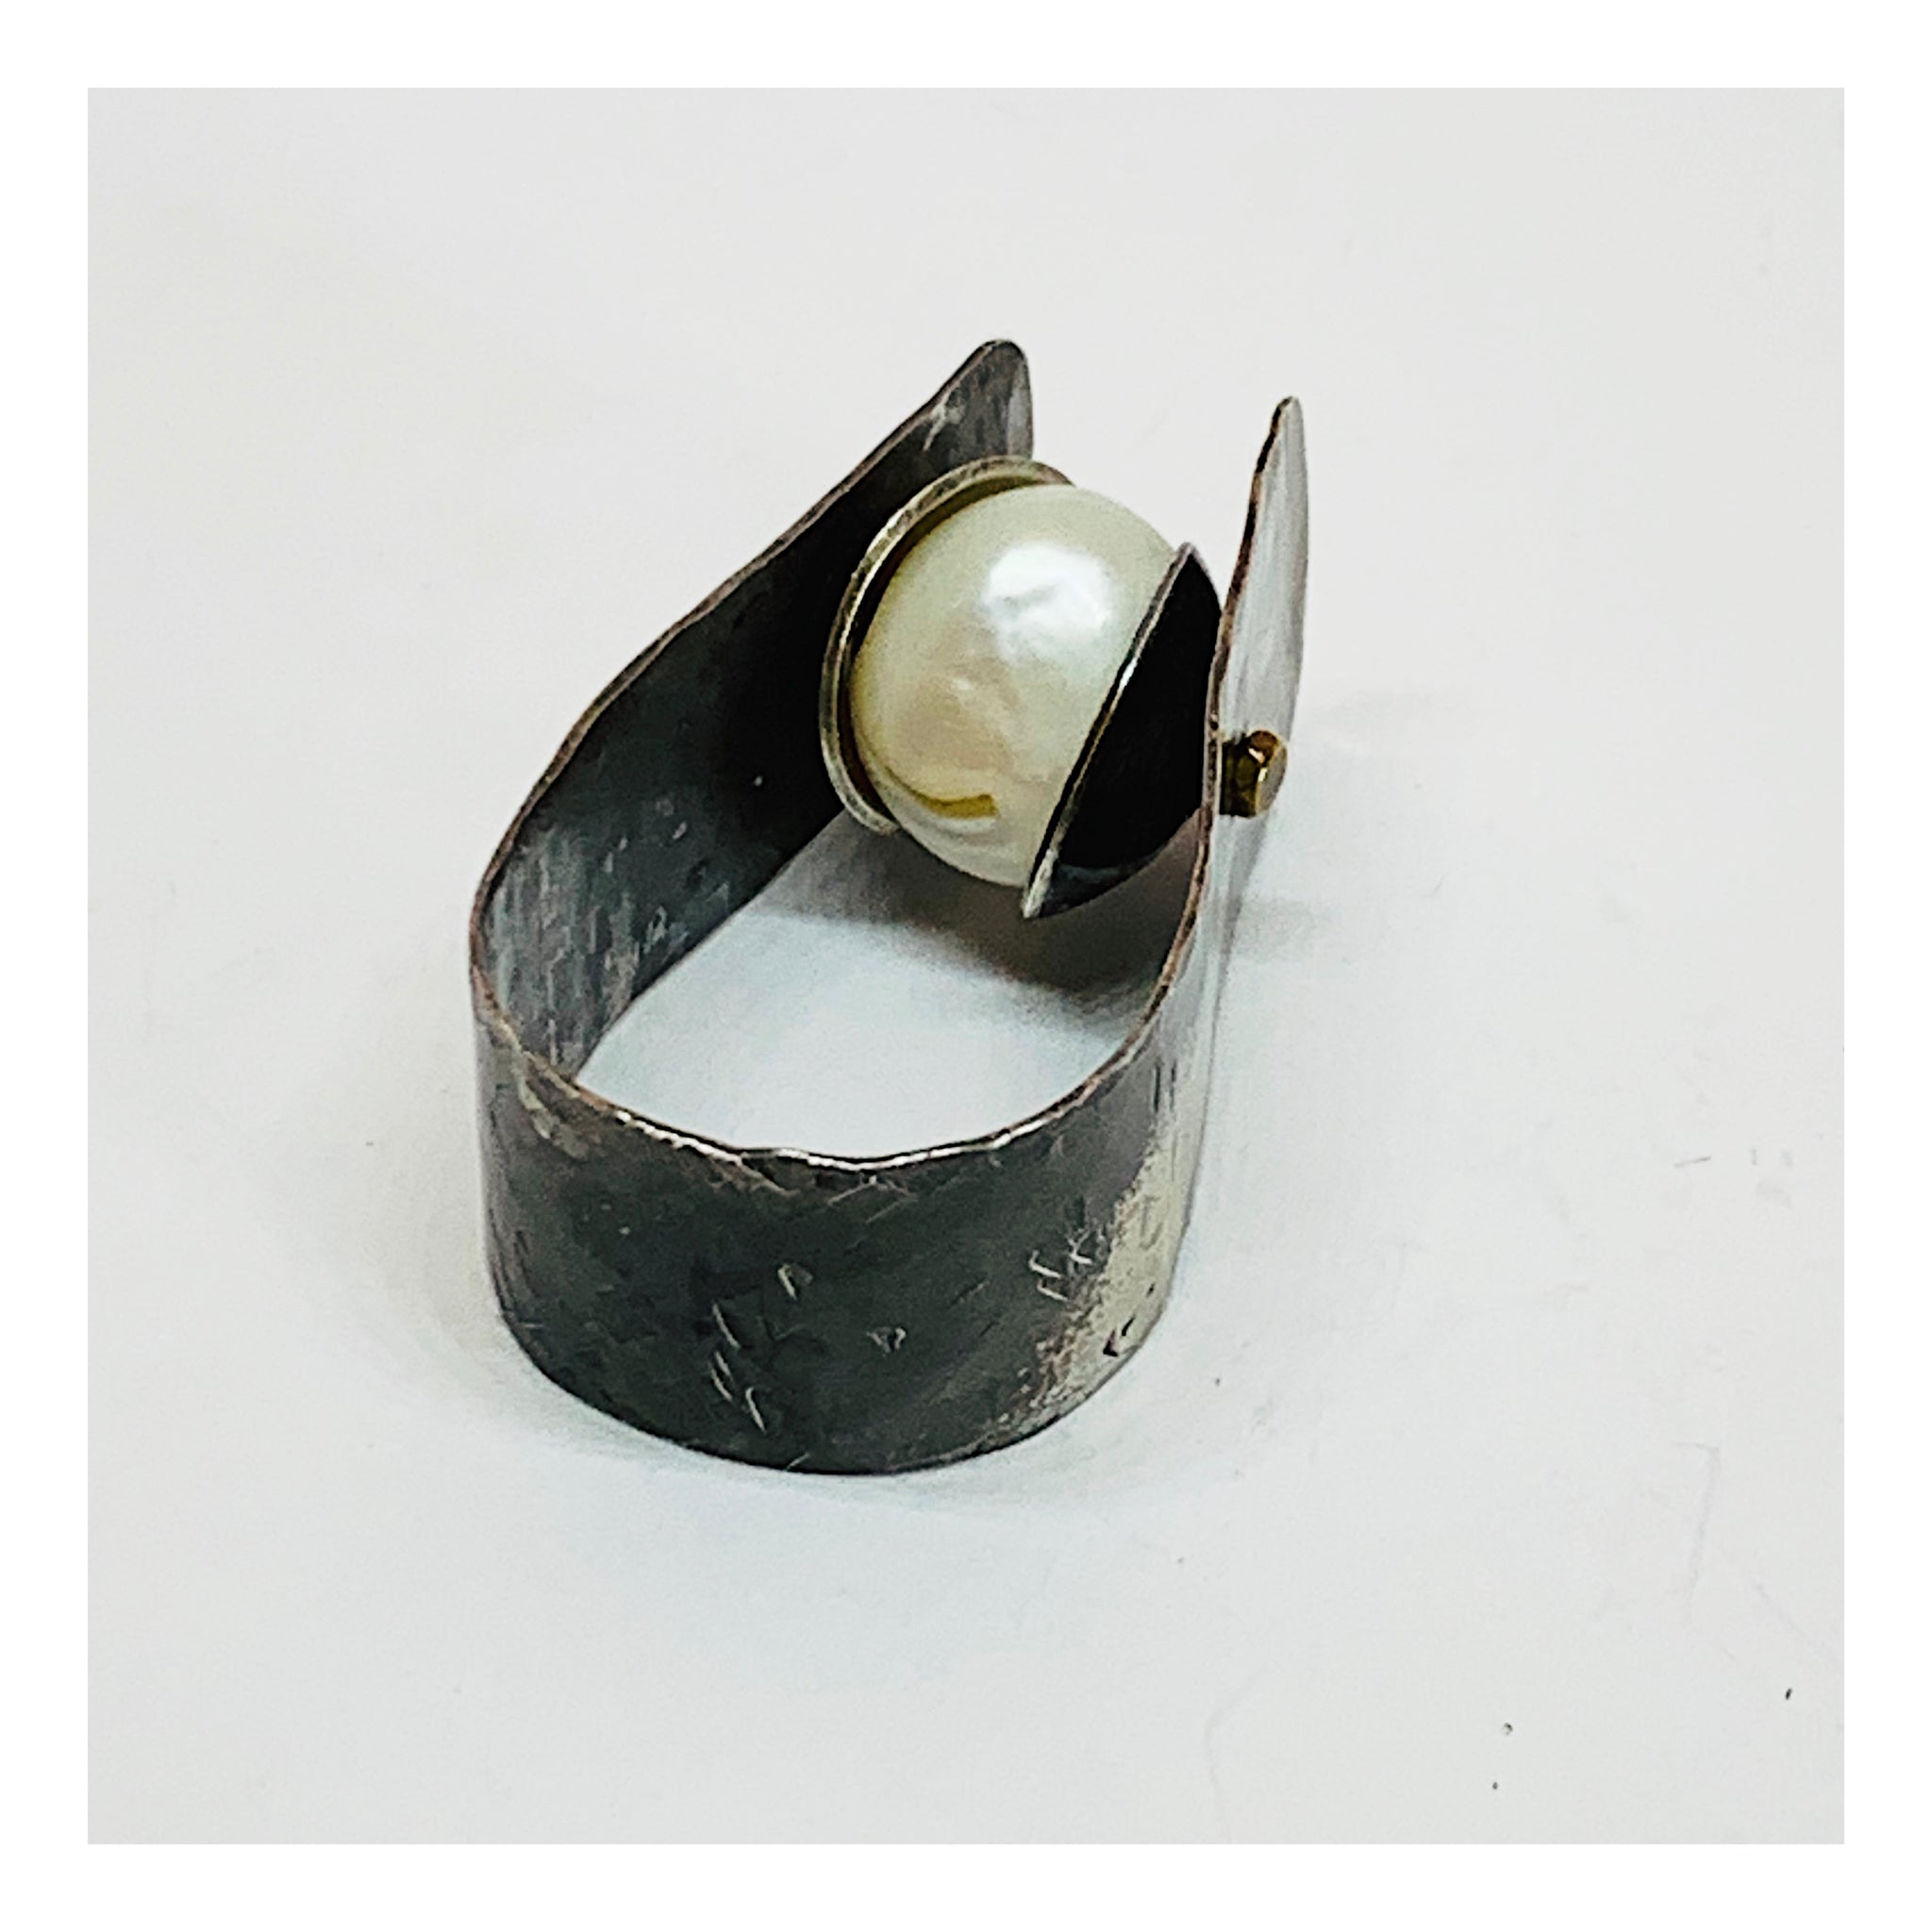 Industrial Chic Statement Ring - Urban Chic Jewelry